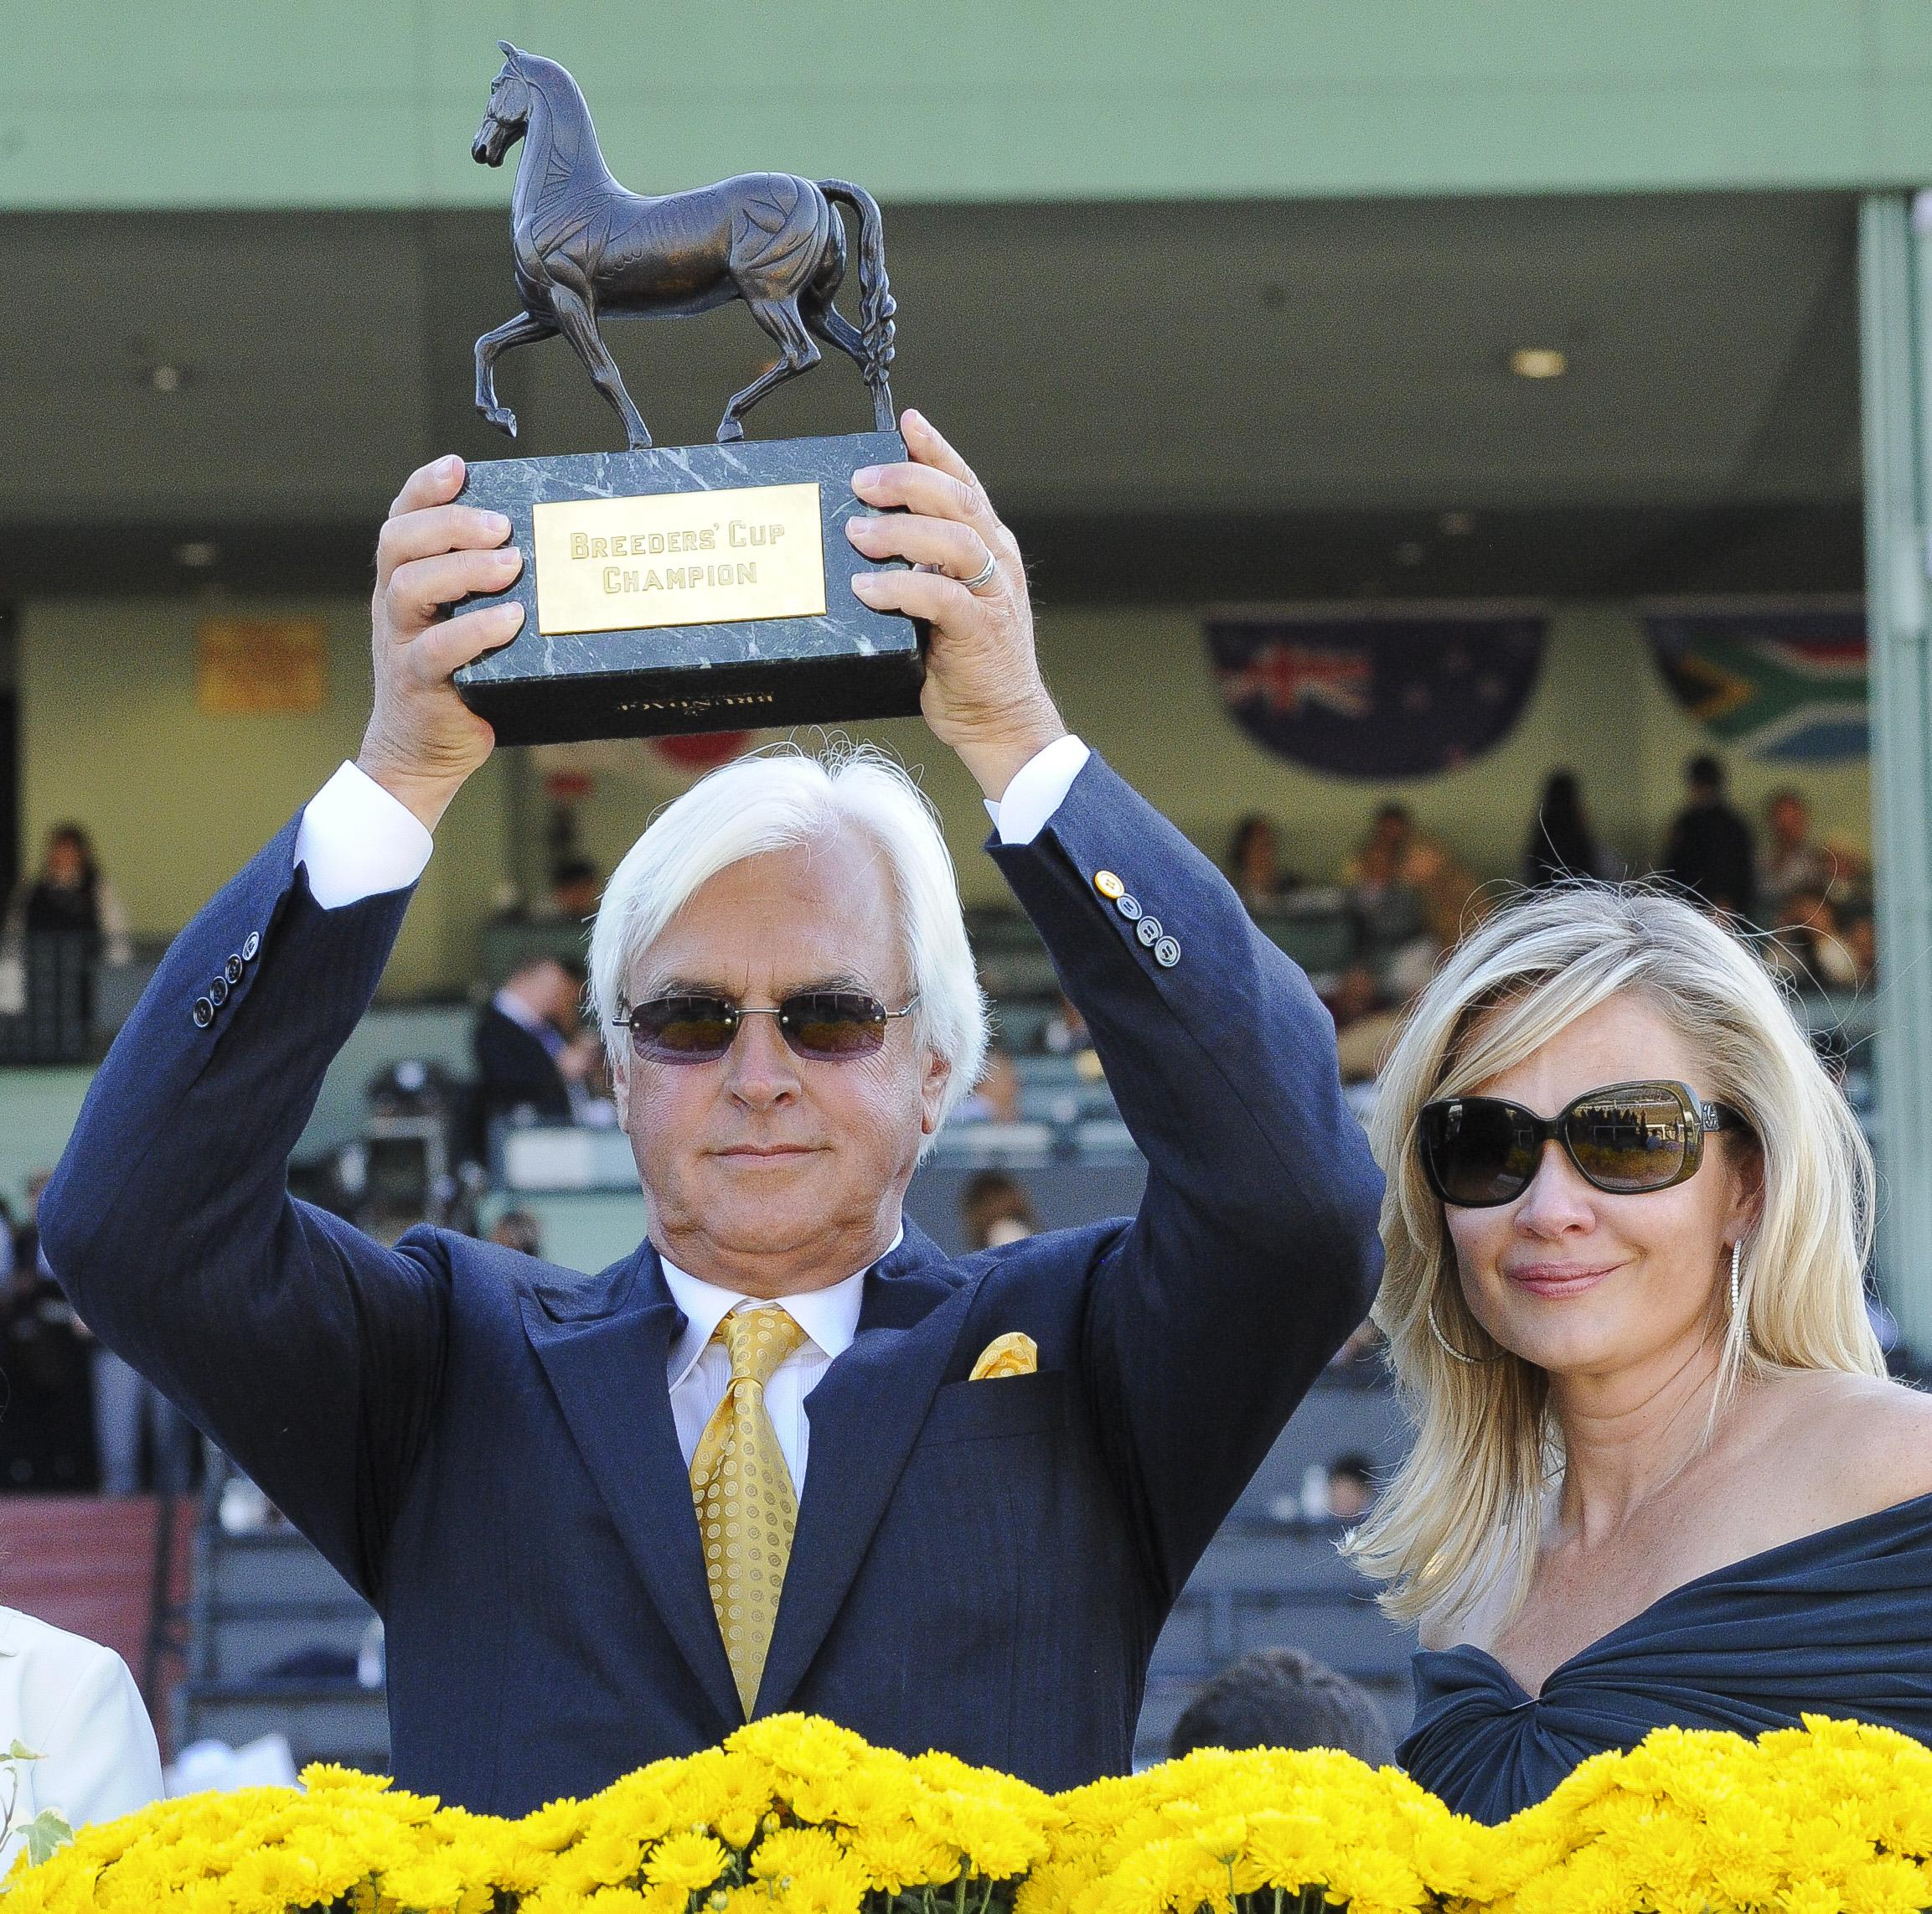 Bob Baffert and wife Jill after winning the 2013 Juvenile.